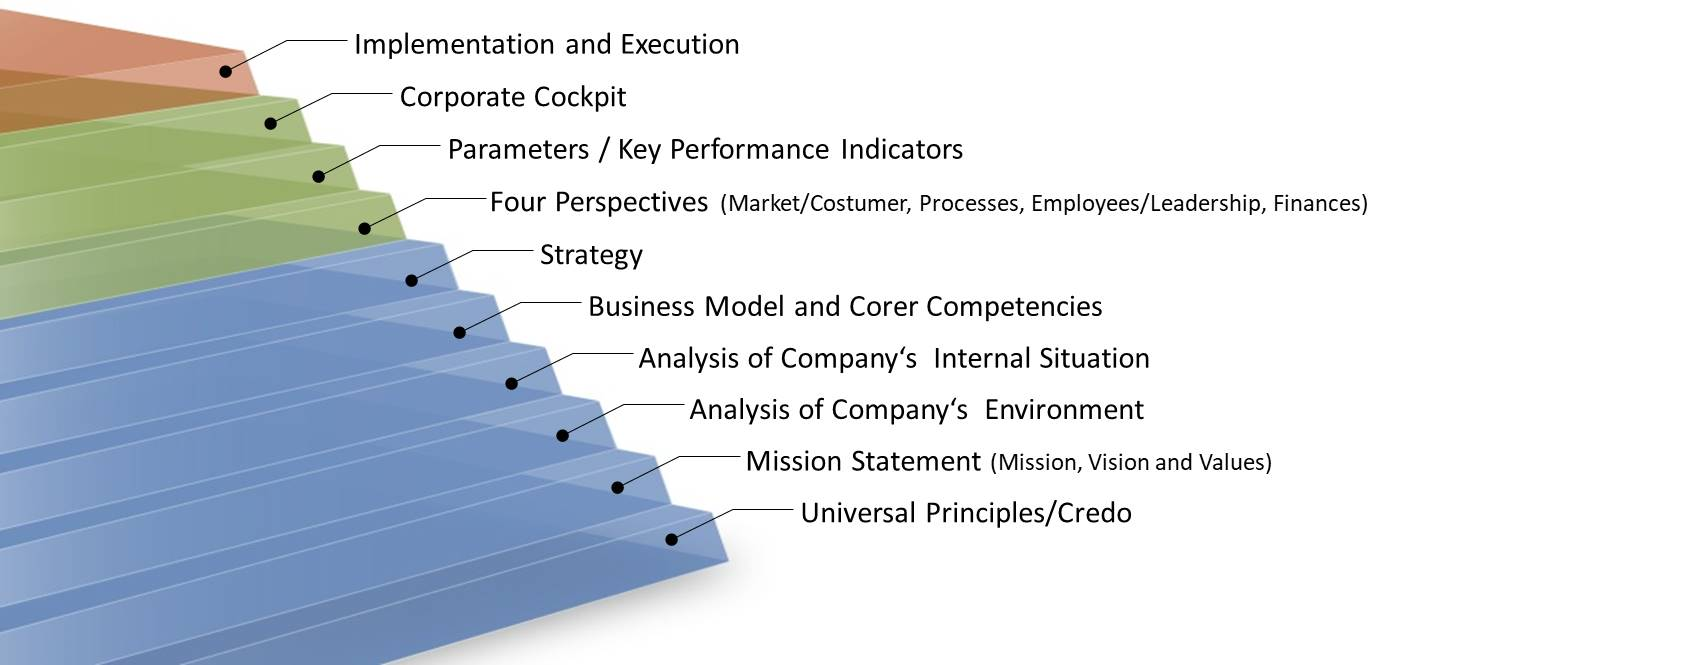 The 10 steps model of Weissman for strategy development and implementation